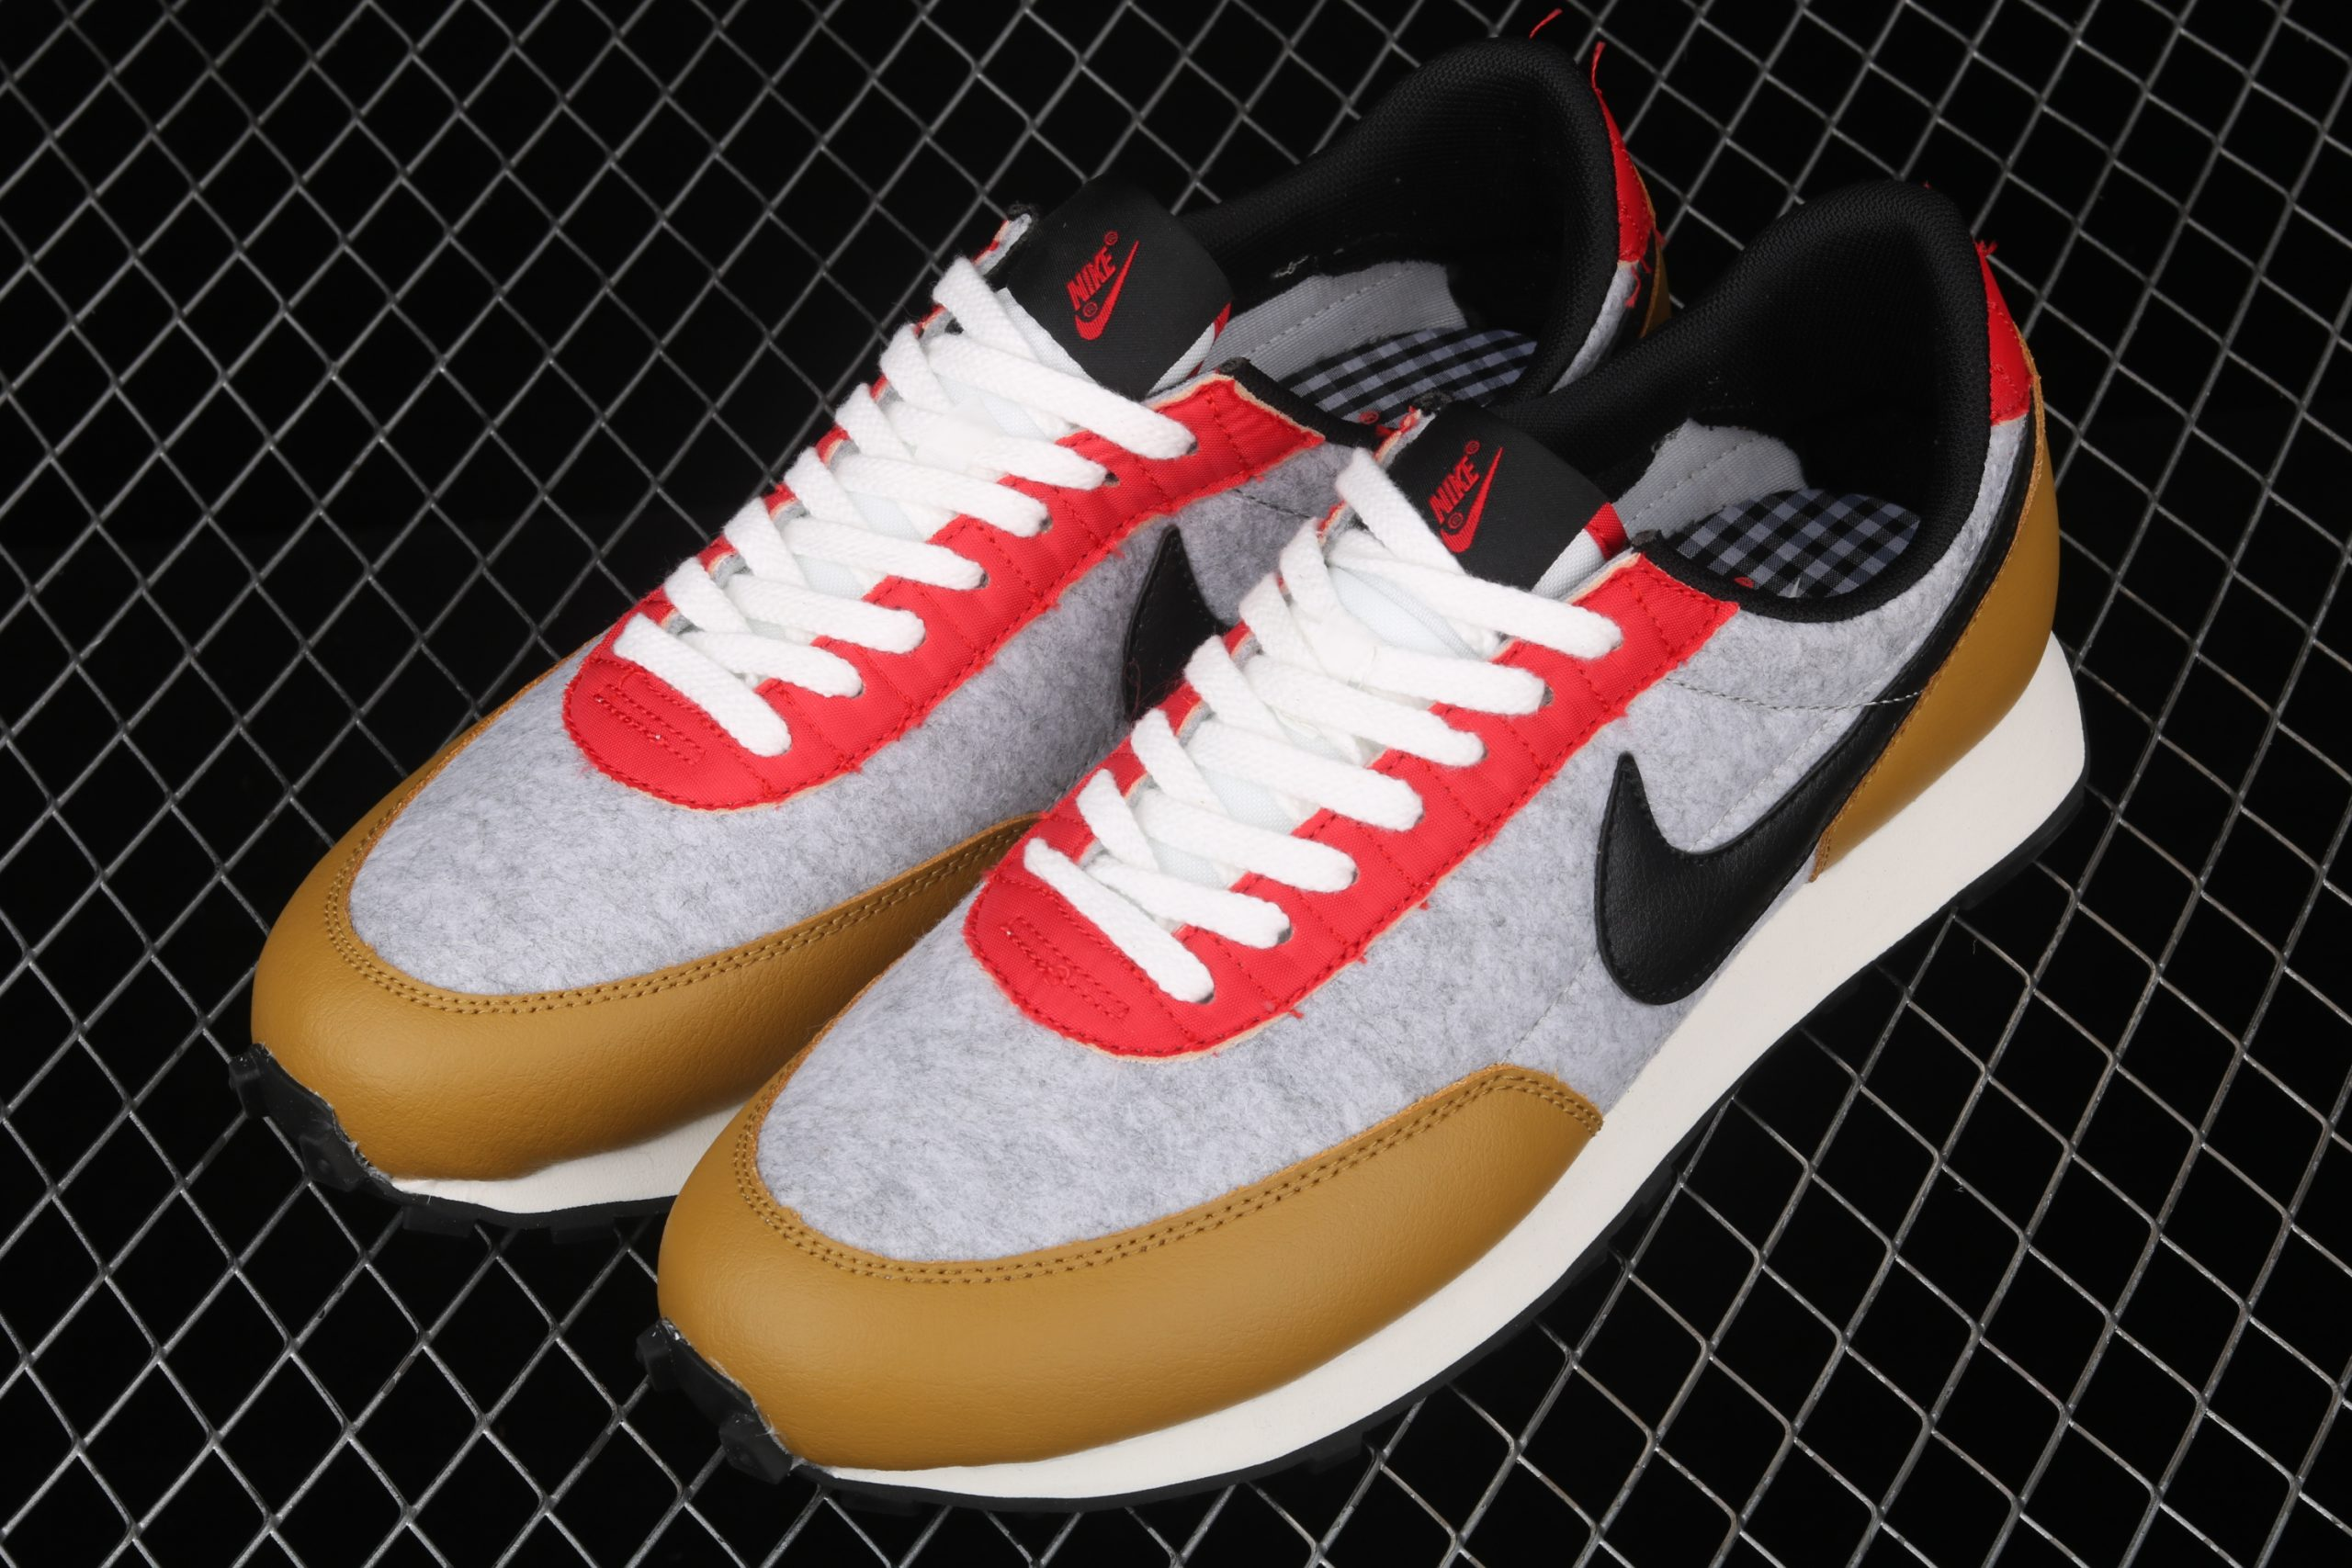 Wmns Daybreak QS Gold Suede Red Grey Bevel